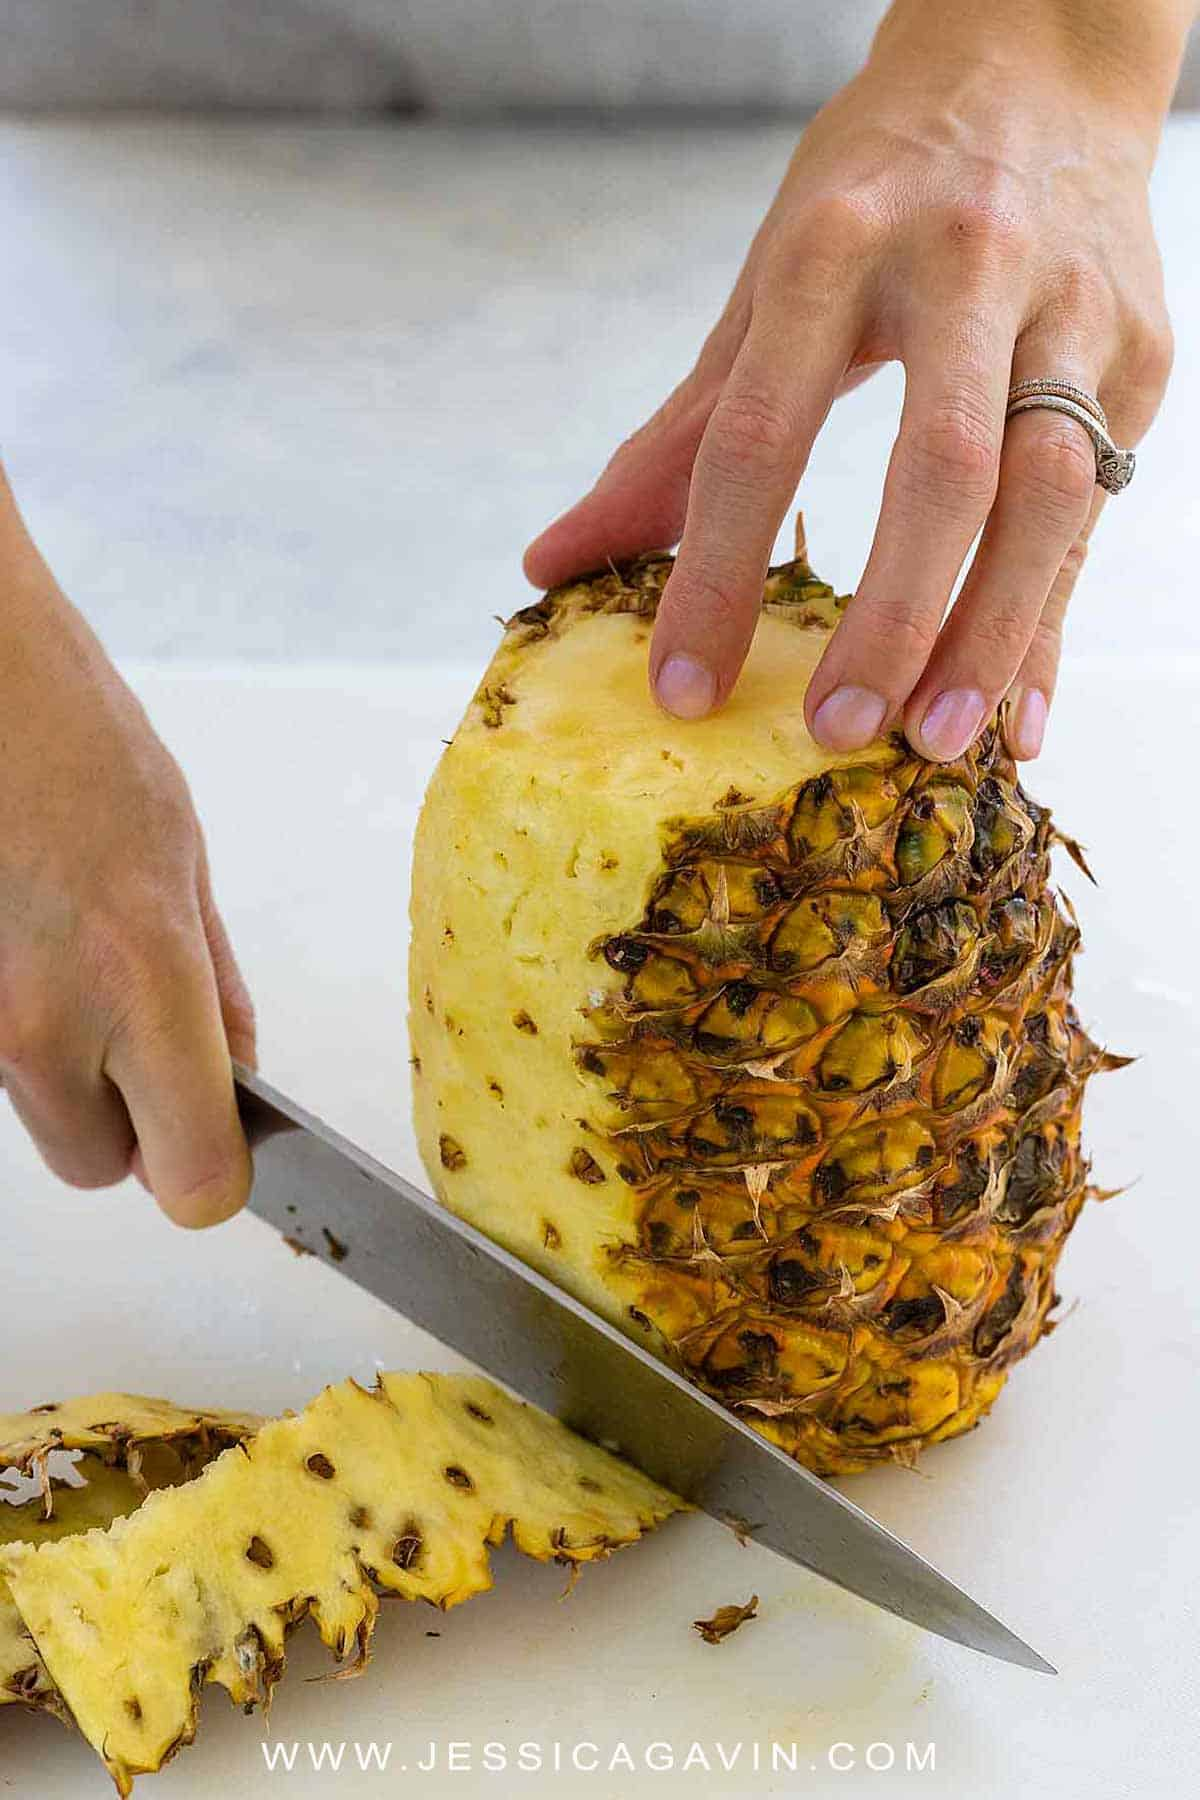 Learn how to cut a pineapple with this simple step-by-step guide. The sweet golden flesh can be sliced and diced for a tropical fruit snack or usedin various recipes. #howto #pineapple #knifeskills